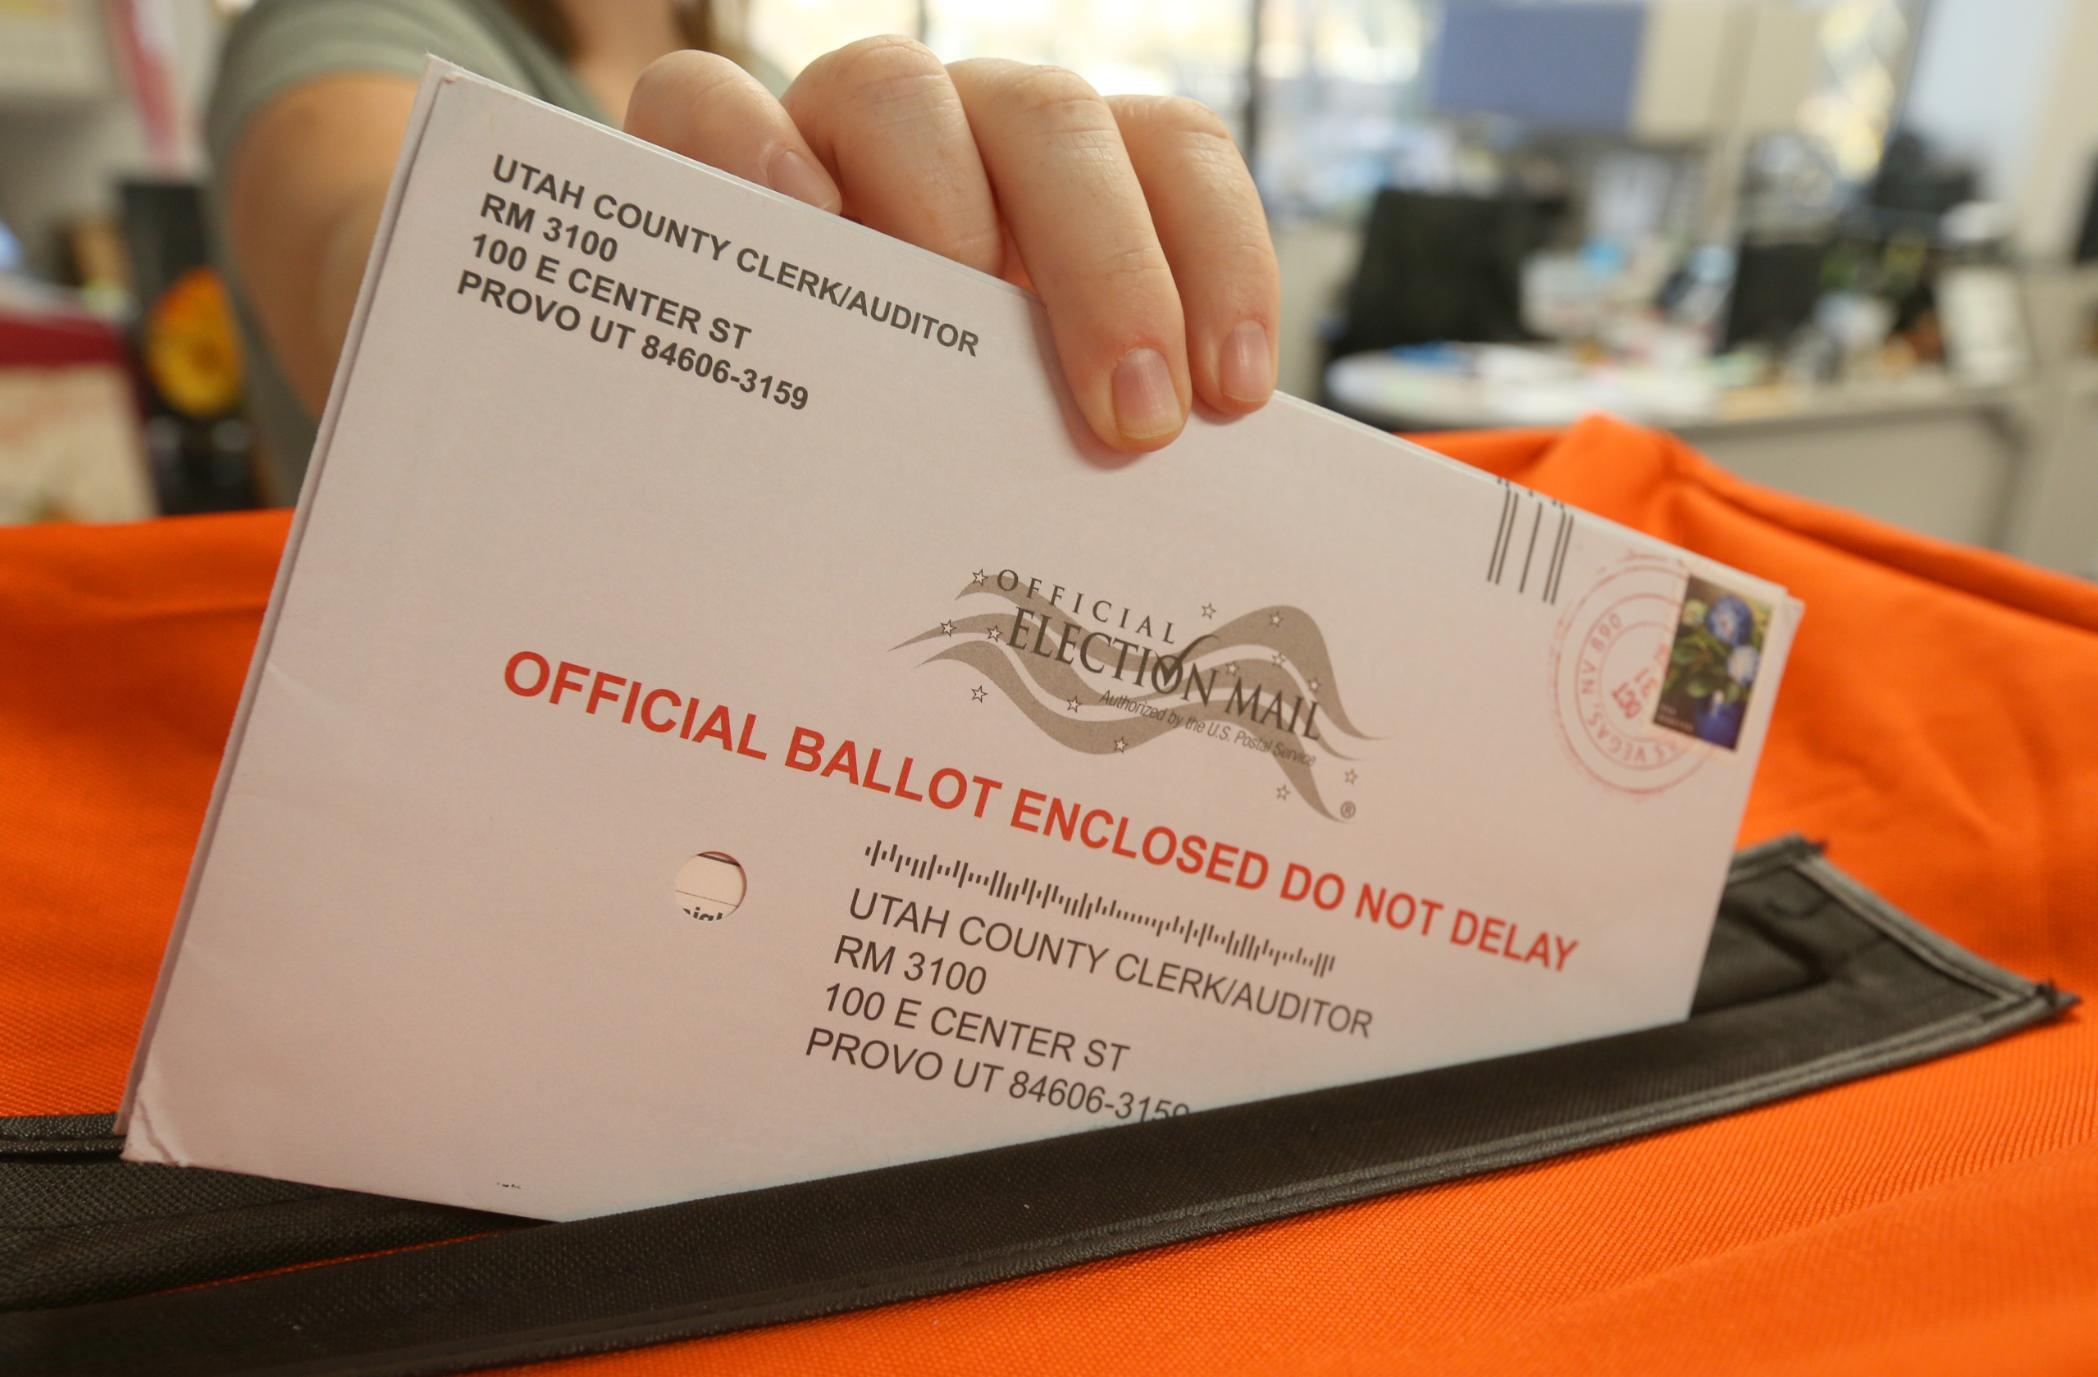 Local officials say nine Pennsylvania ballots were discarded due to an error, undercutting Trump claims of intentional fraud